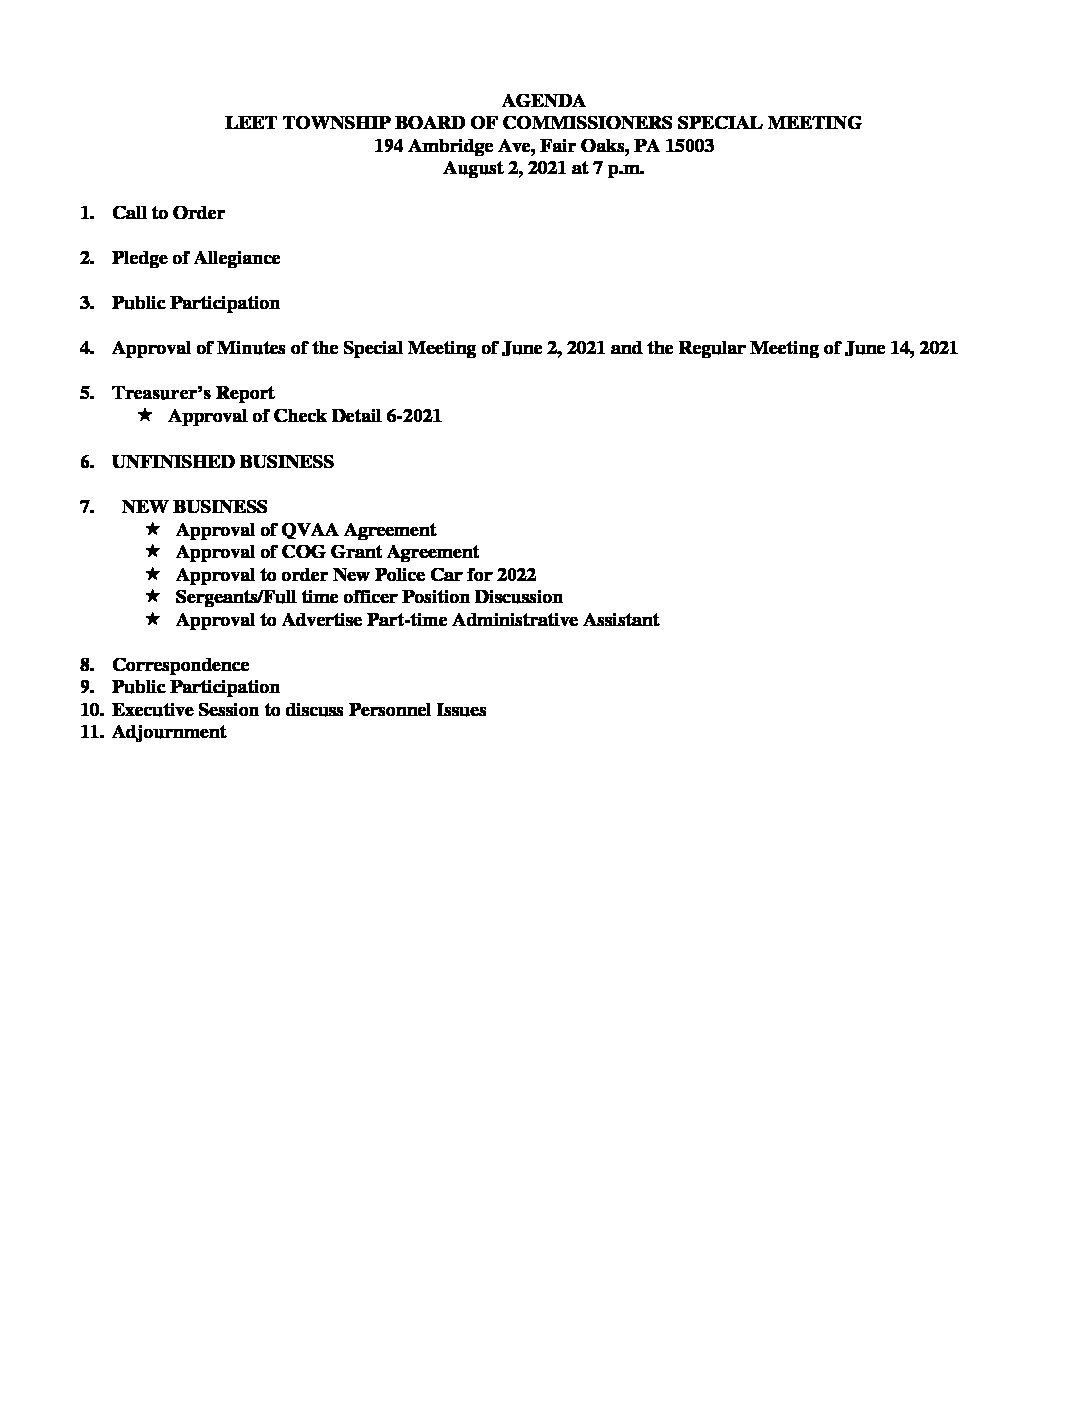 AGENDA Aug. 2, 2021 Special Meeting Board of Commissioners